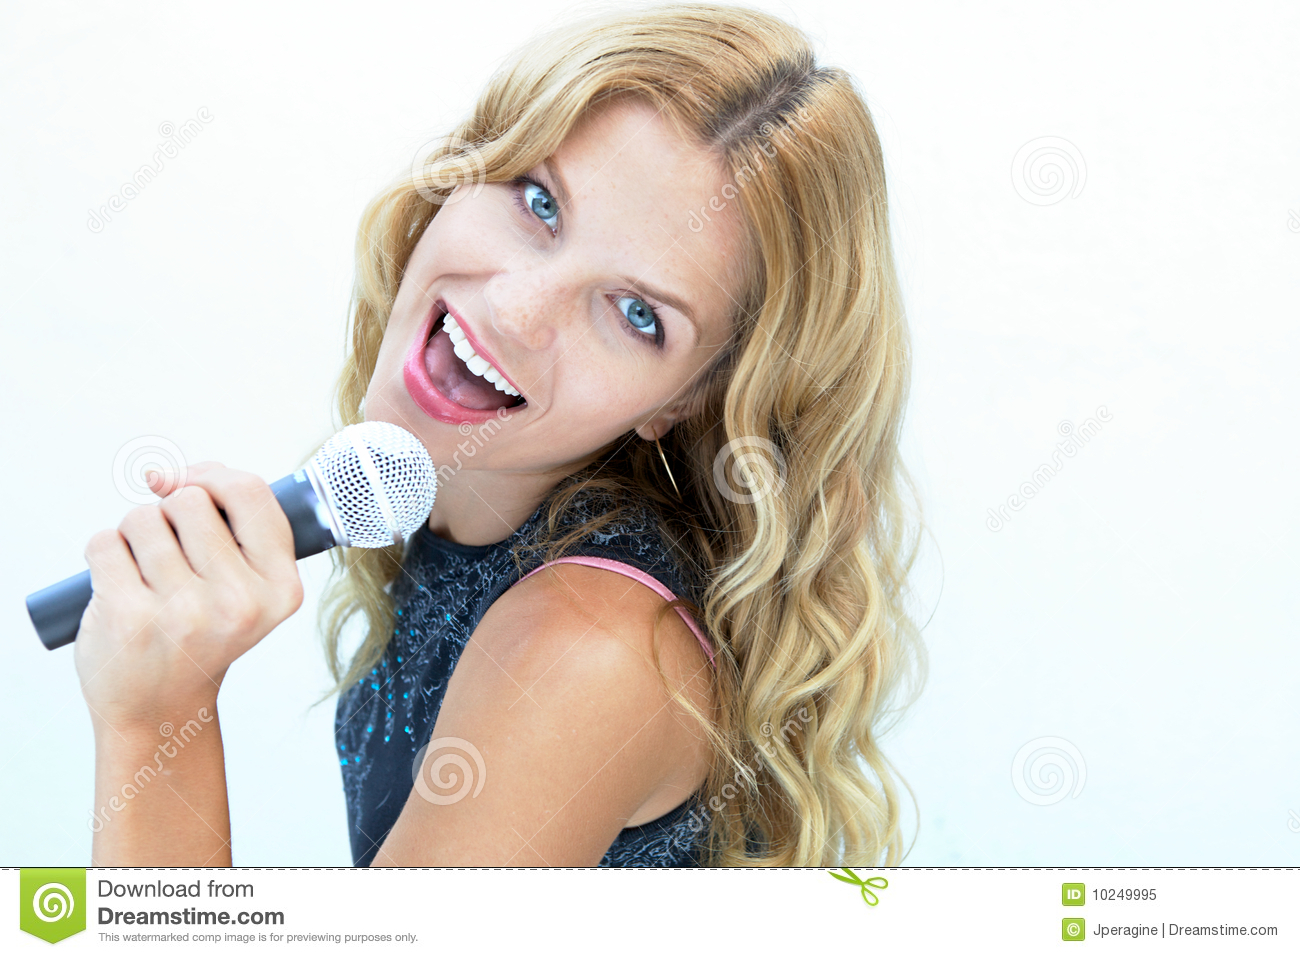 Female Rock Star Royalty Free Stock Photo   Image  10249995